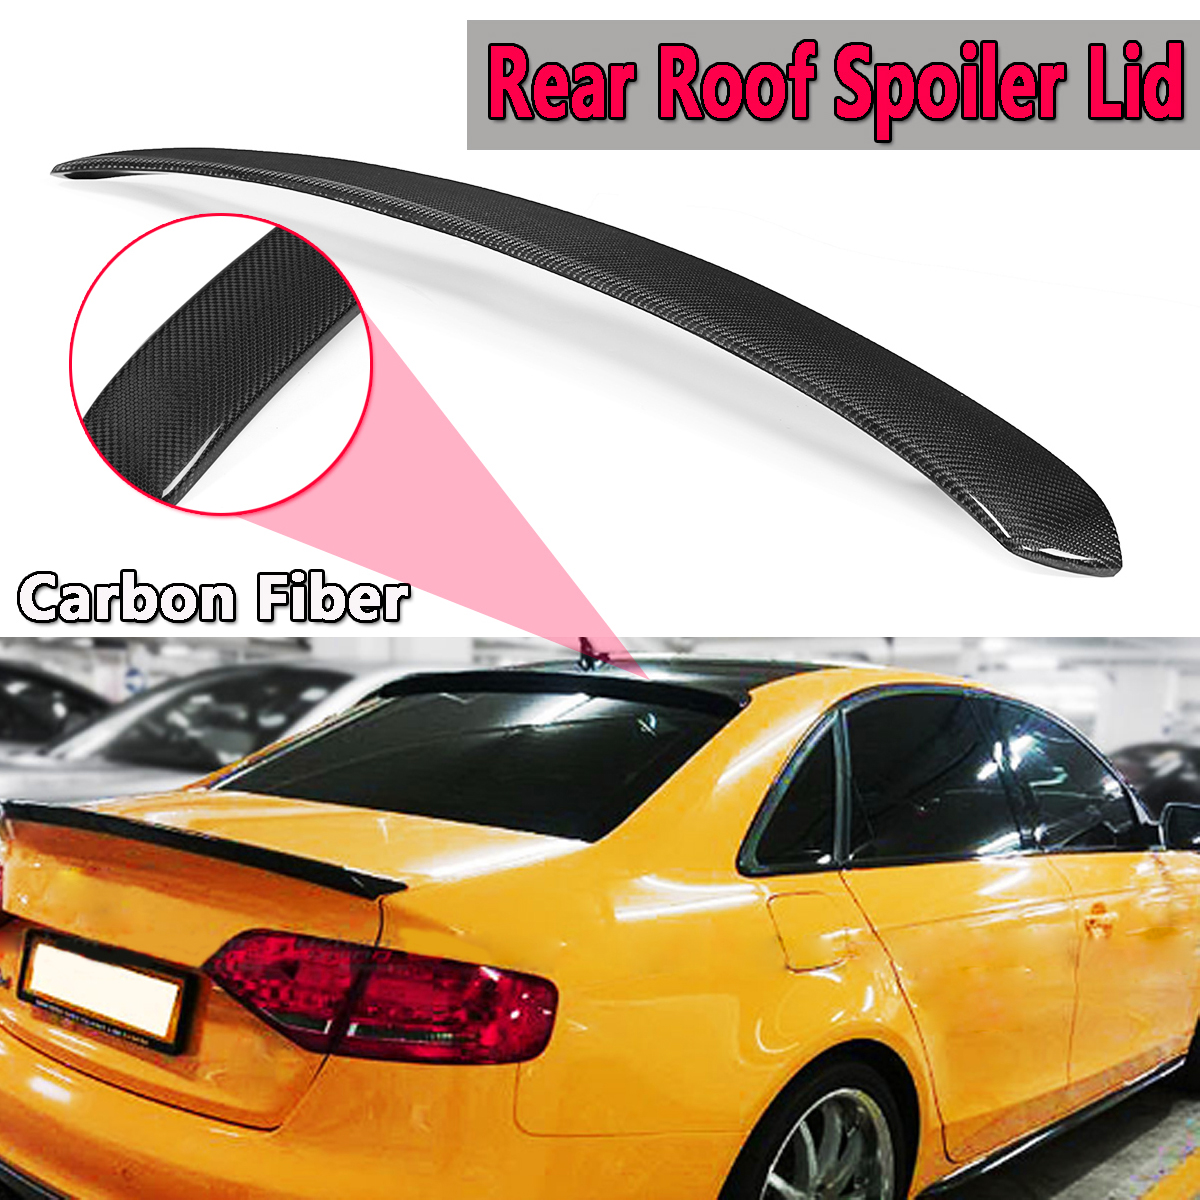 For AUDI A4 S4 B8 Quattro Sedan Models 2009-2016 Real Carbon Fiber Rear Roof Spoiler Lid Rear Wing Spoiler Rear Trunk Roof Wing for audi a3 s3 2014 2015 2016 sedan 4doors high quality carbon fiber rear wing roof rear box decorated rear spoiler